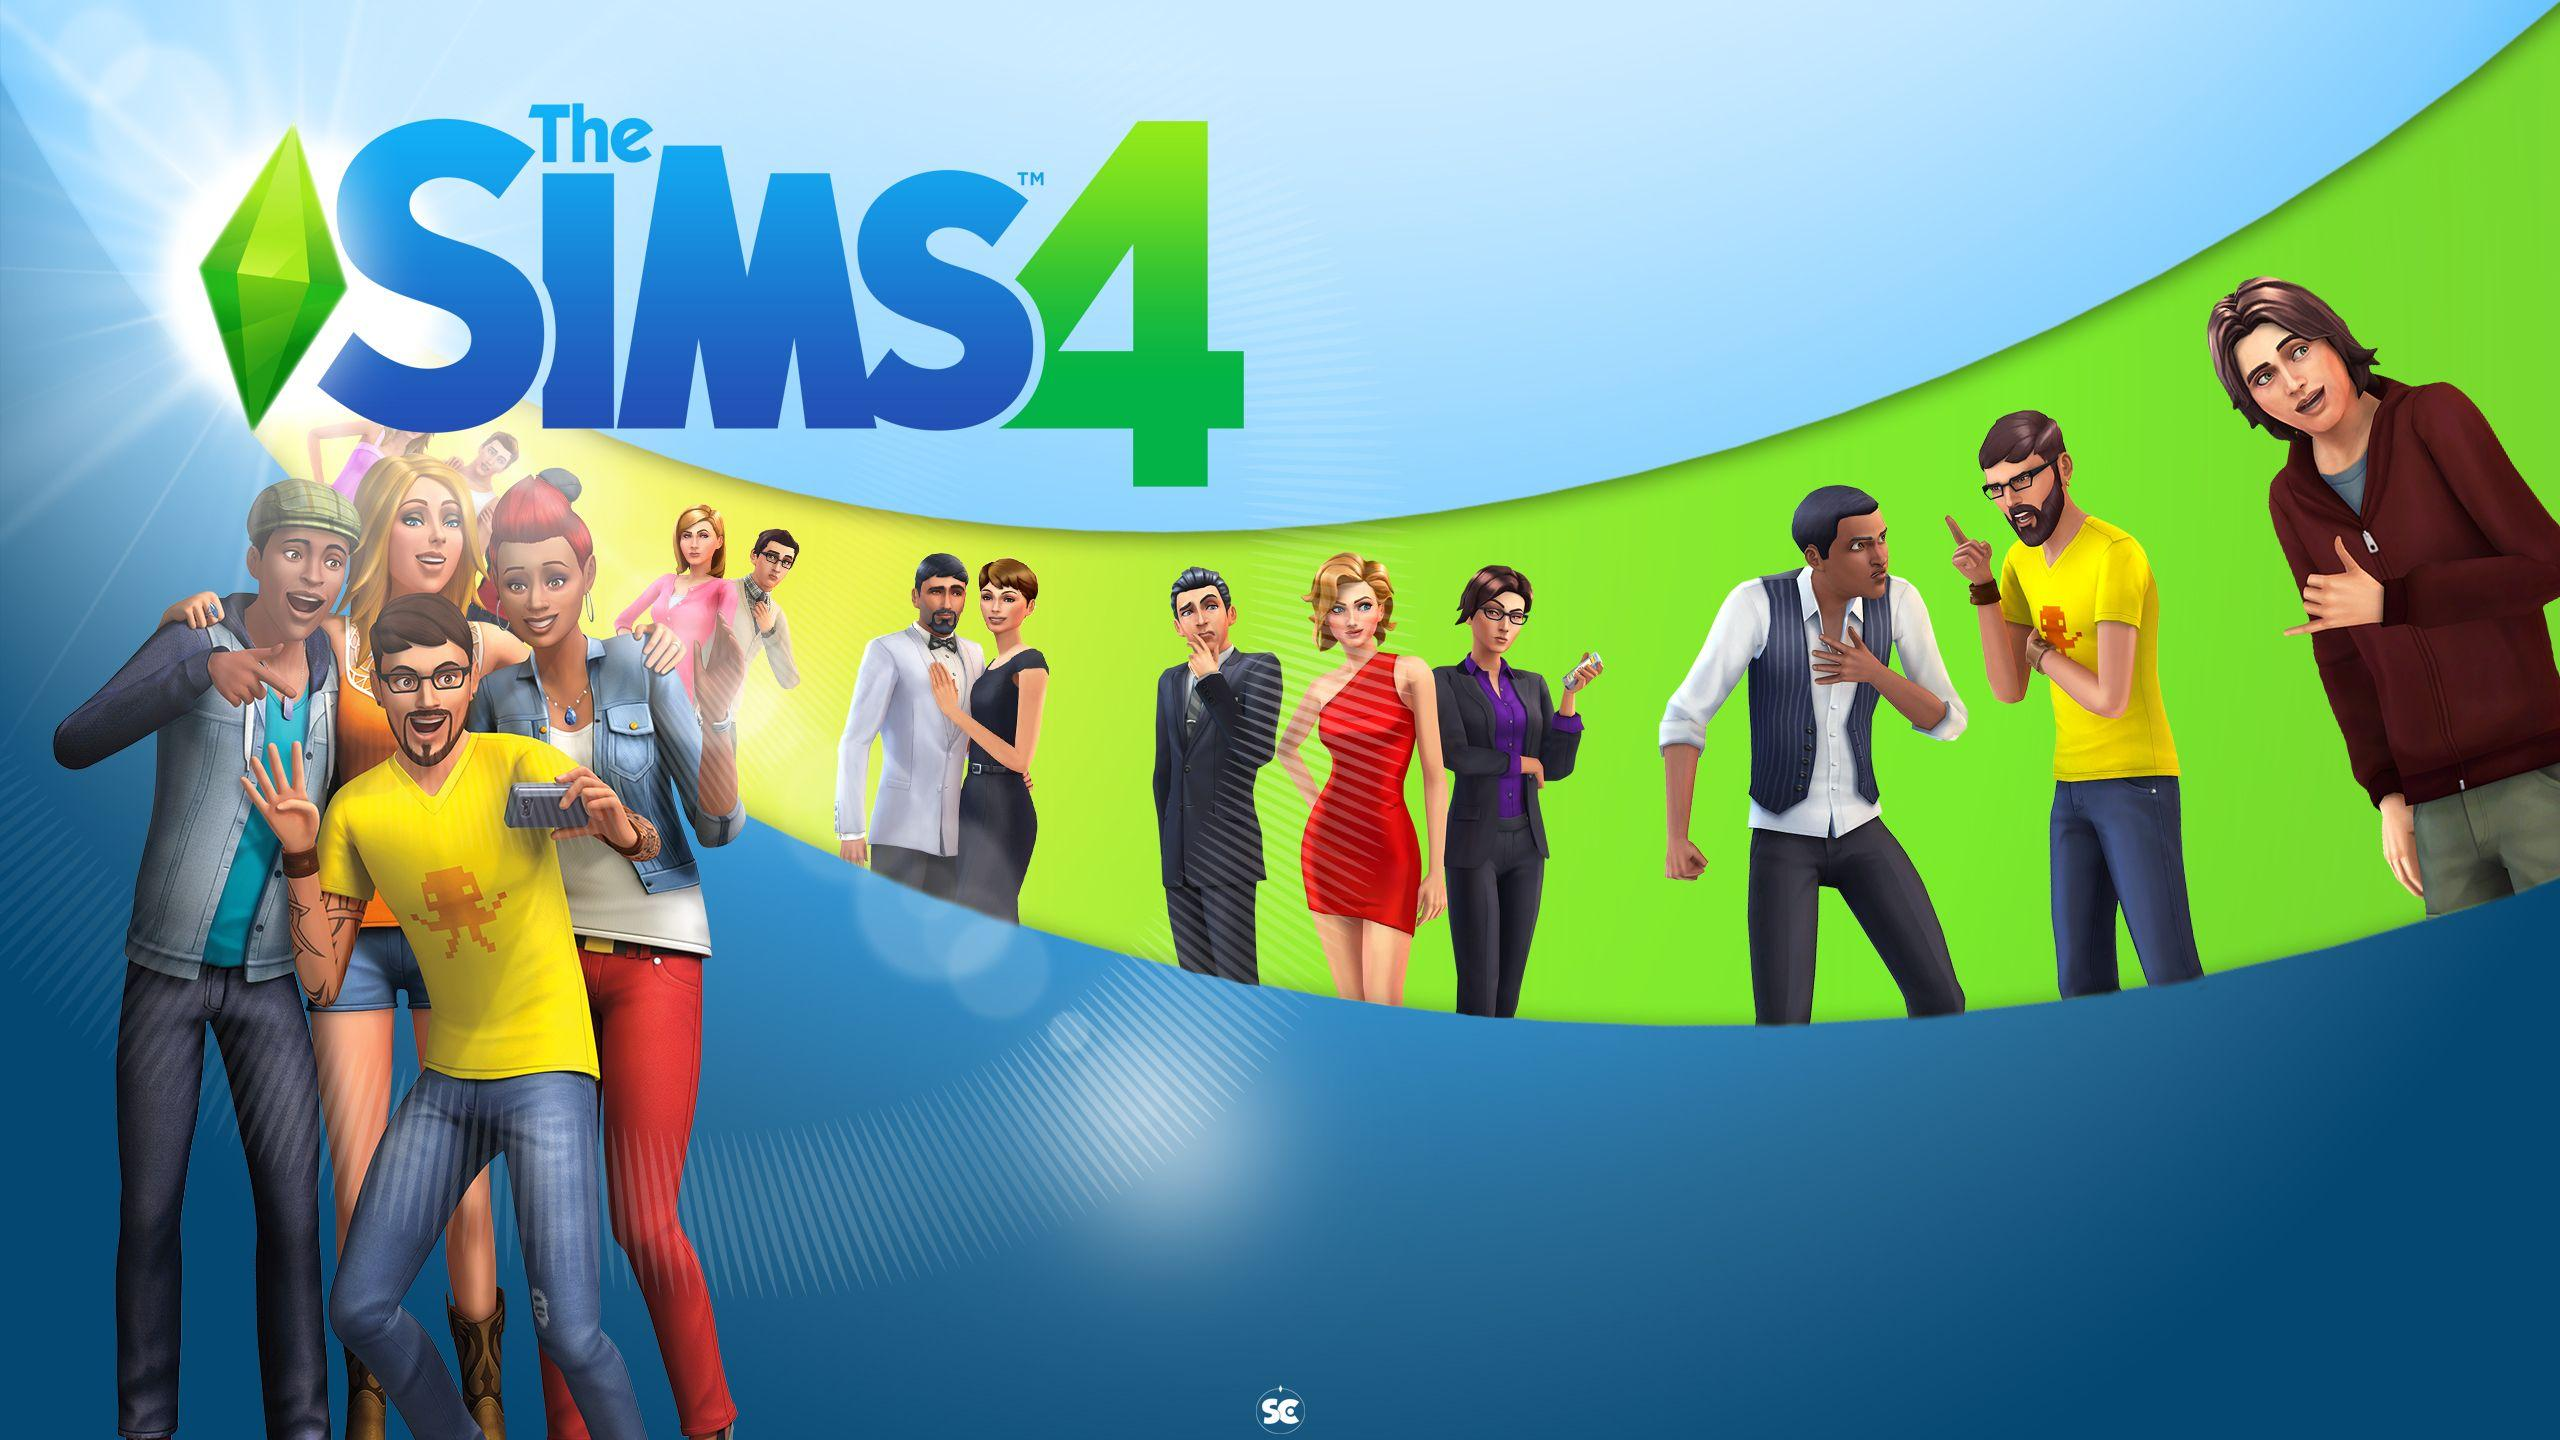 The Sims 4 Wallpapers High Resolution and Quality Download